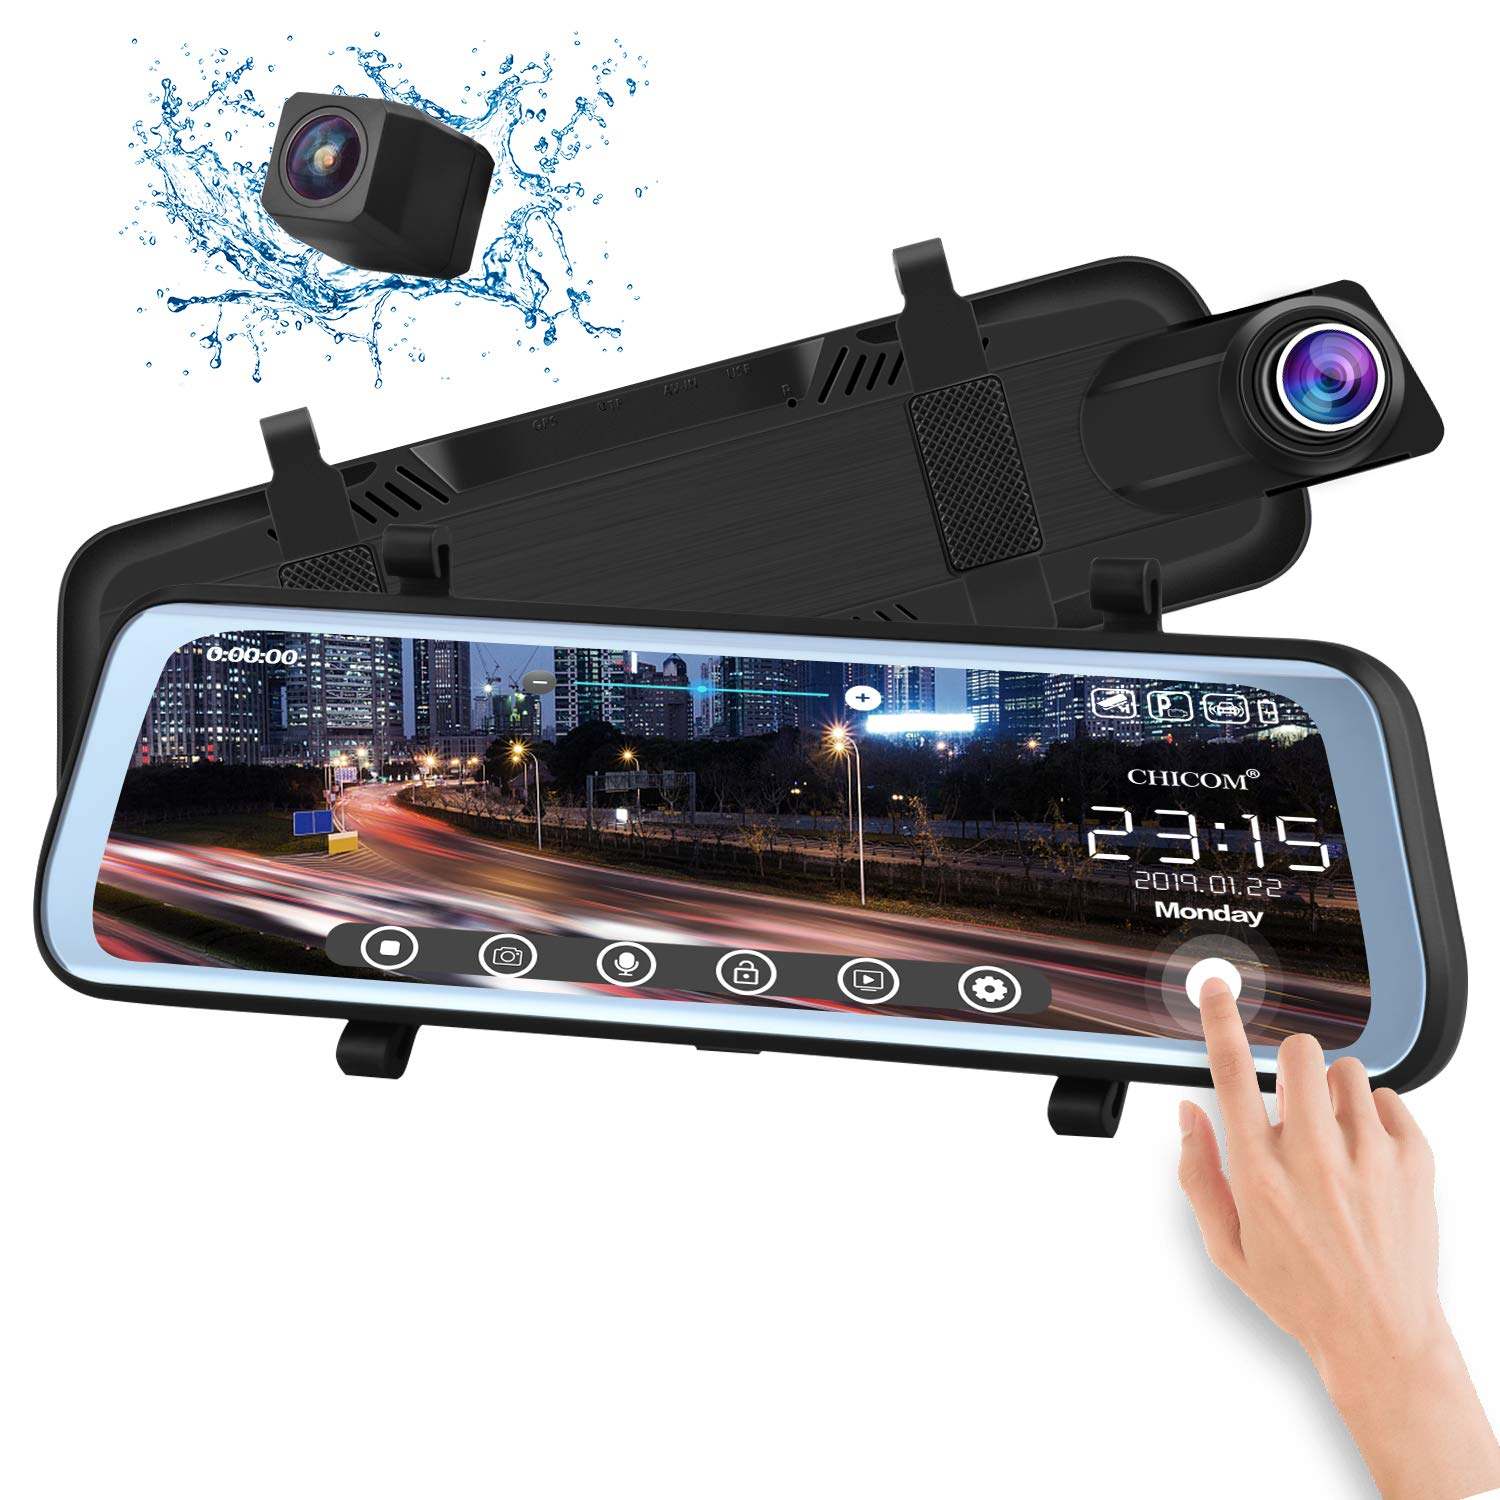 CHICOM V21 9.66 inch Mirror Dash Cam Touch Full Screen ; 1080P 170° Full HD Front Camera;1080P 140°Wide Angle Full HD Rear View Camera;Time-Lapse Photography, 24-Hour Parking Monitoring